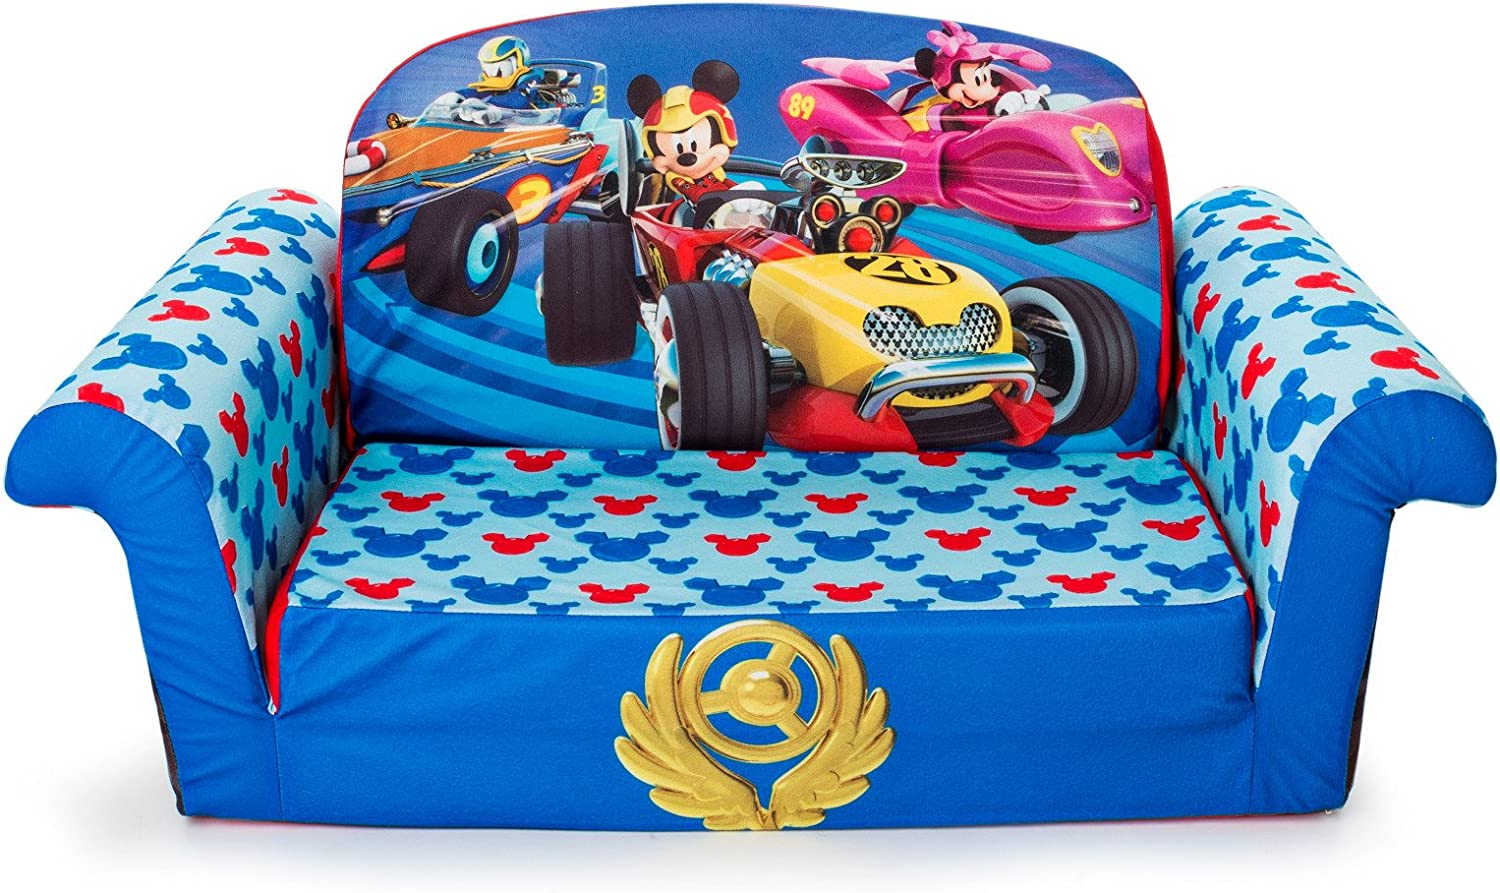 Marshmallow Furniture 6038453 Toys and Games, Roadsters